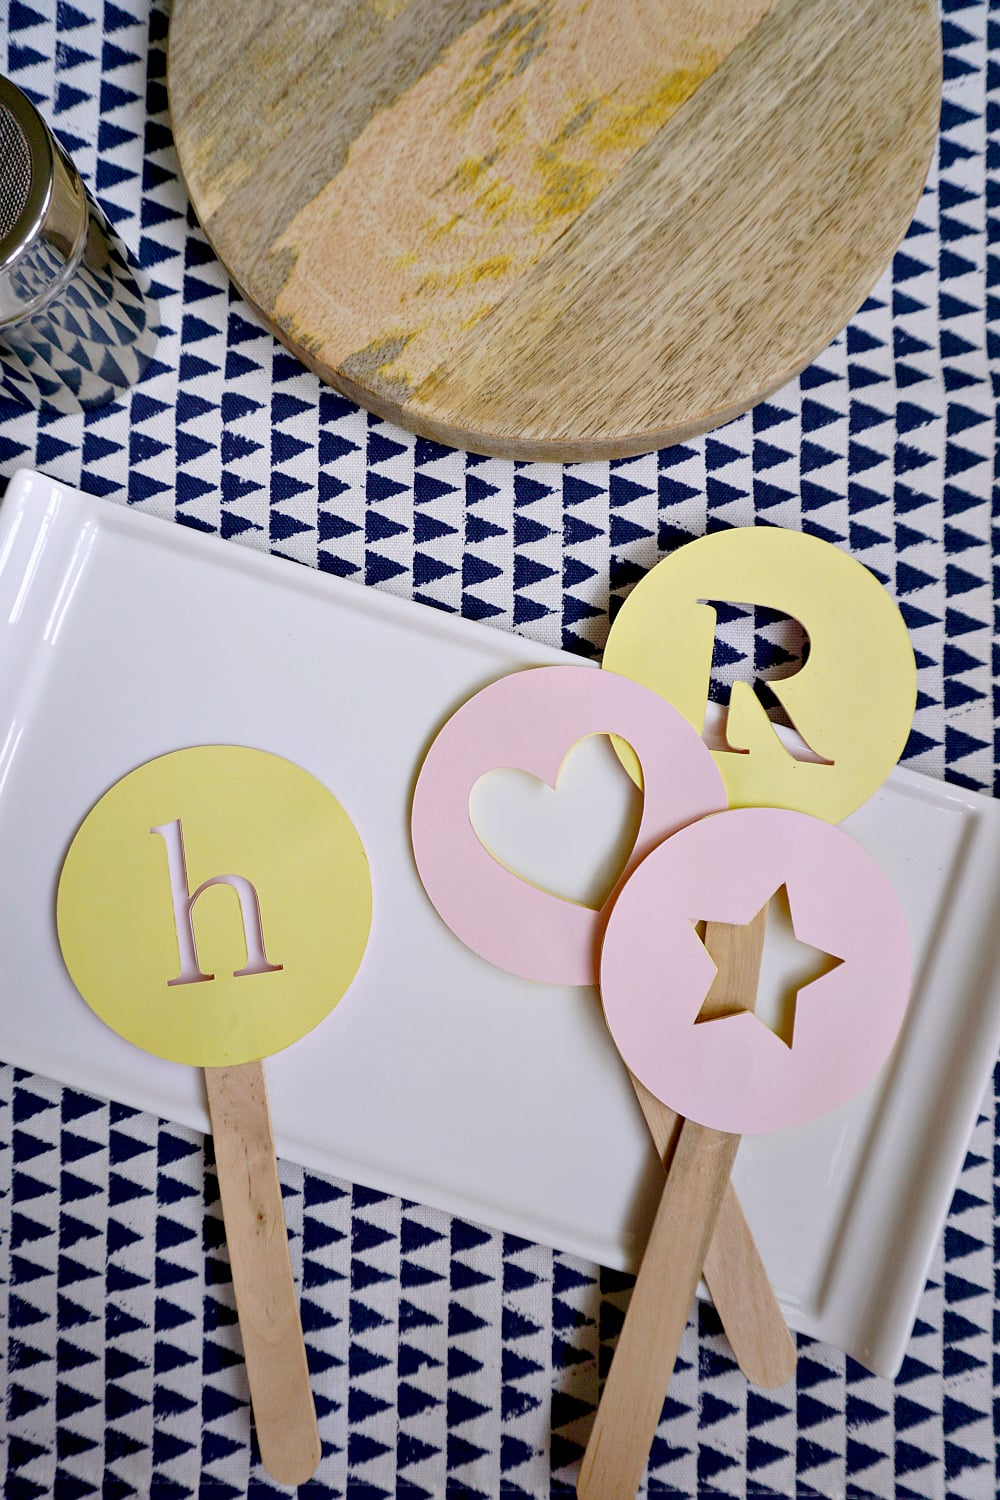 The Ordinary Lovely: DIY coffee stencils